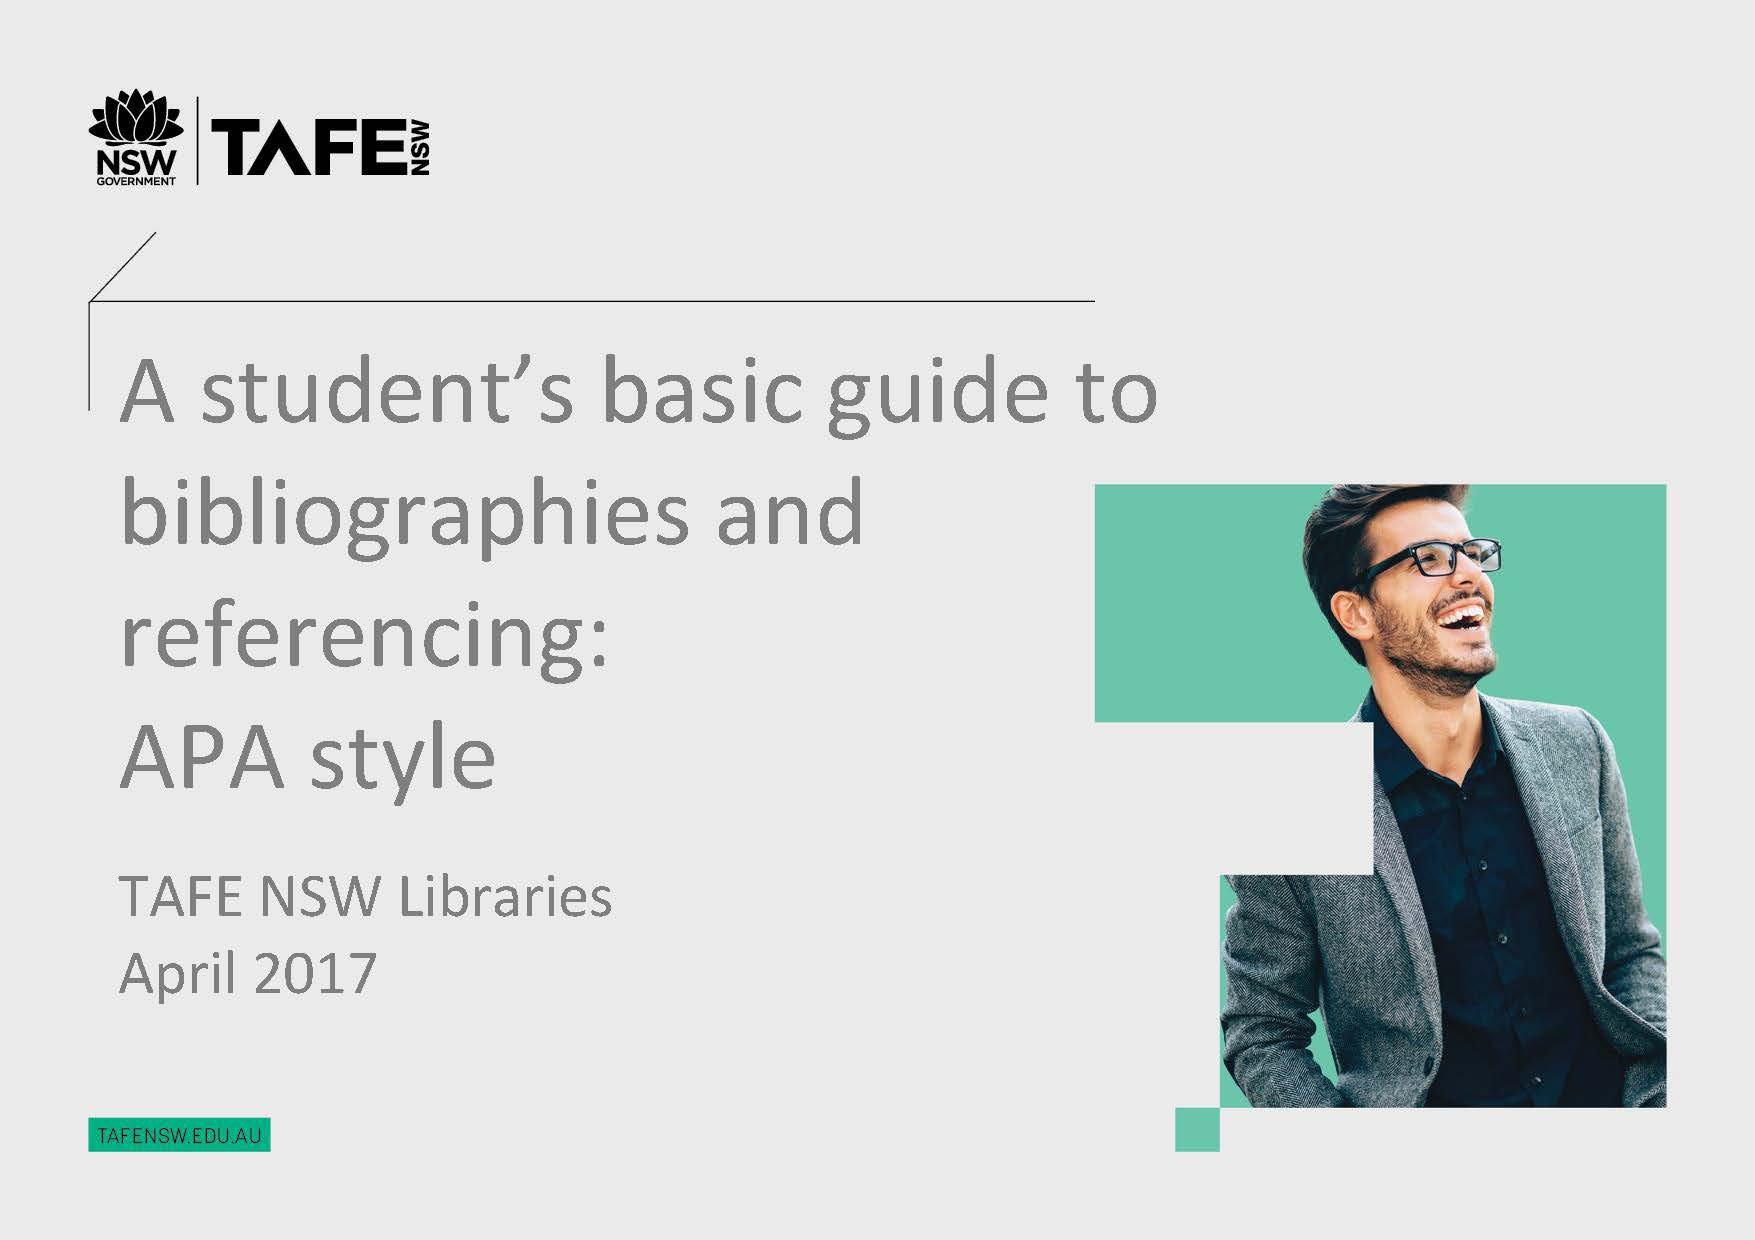 A student's basic guide to bibliographies and  referencing: APA style TAFE NSW Libraries April 2017 tafensw.edu.au